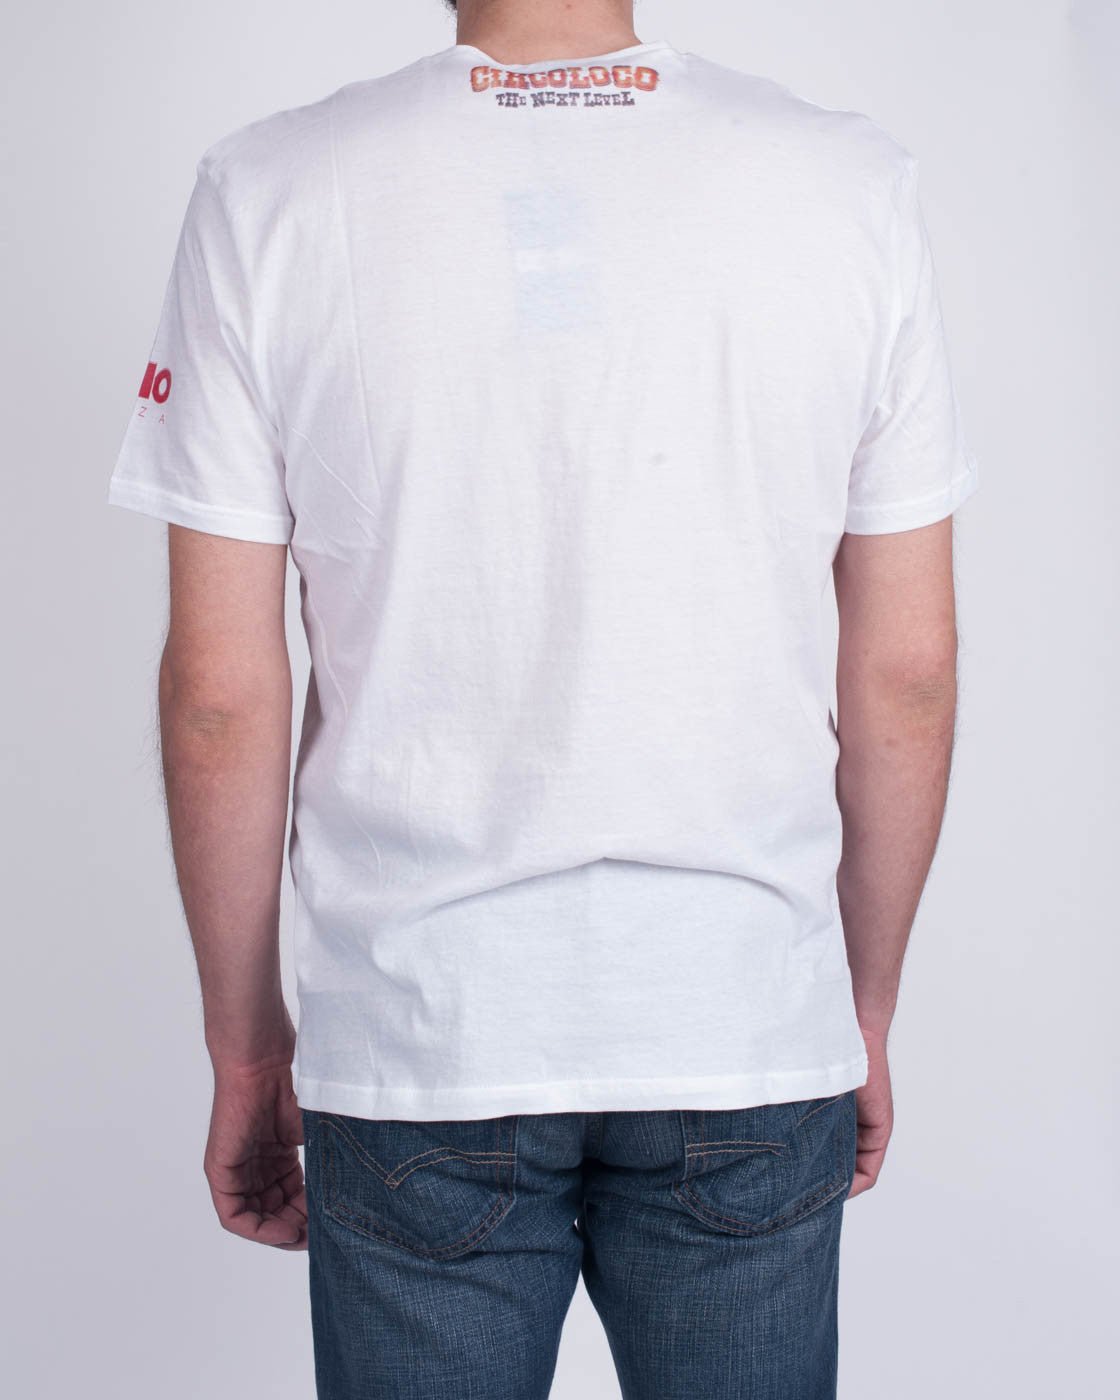 DC10 CIRCOLOCO Small White Clown T-Shirt